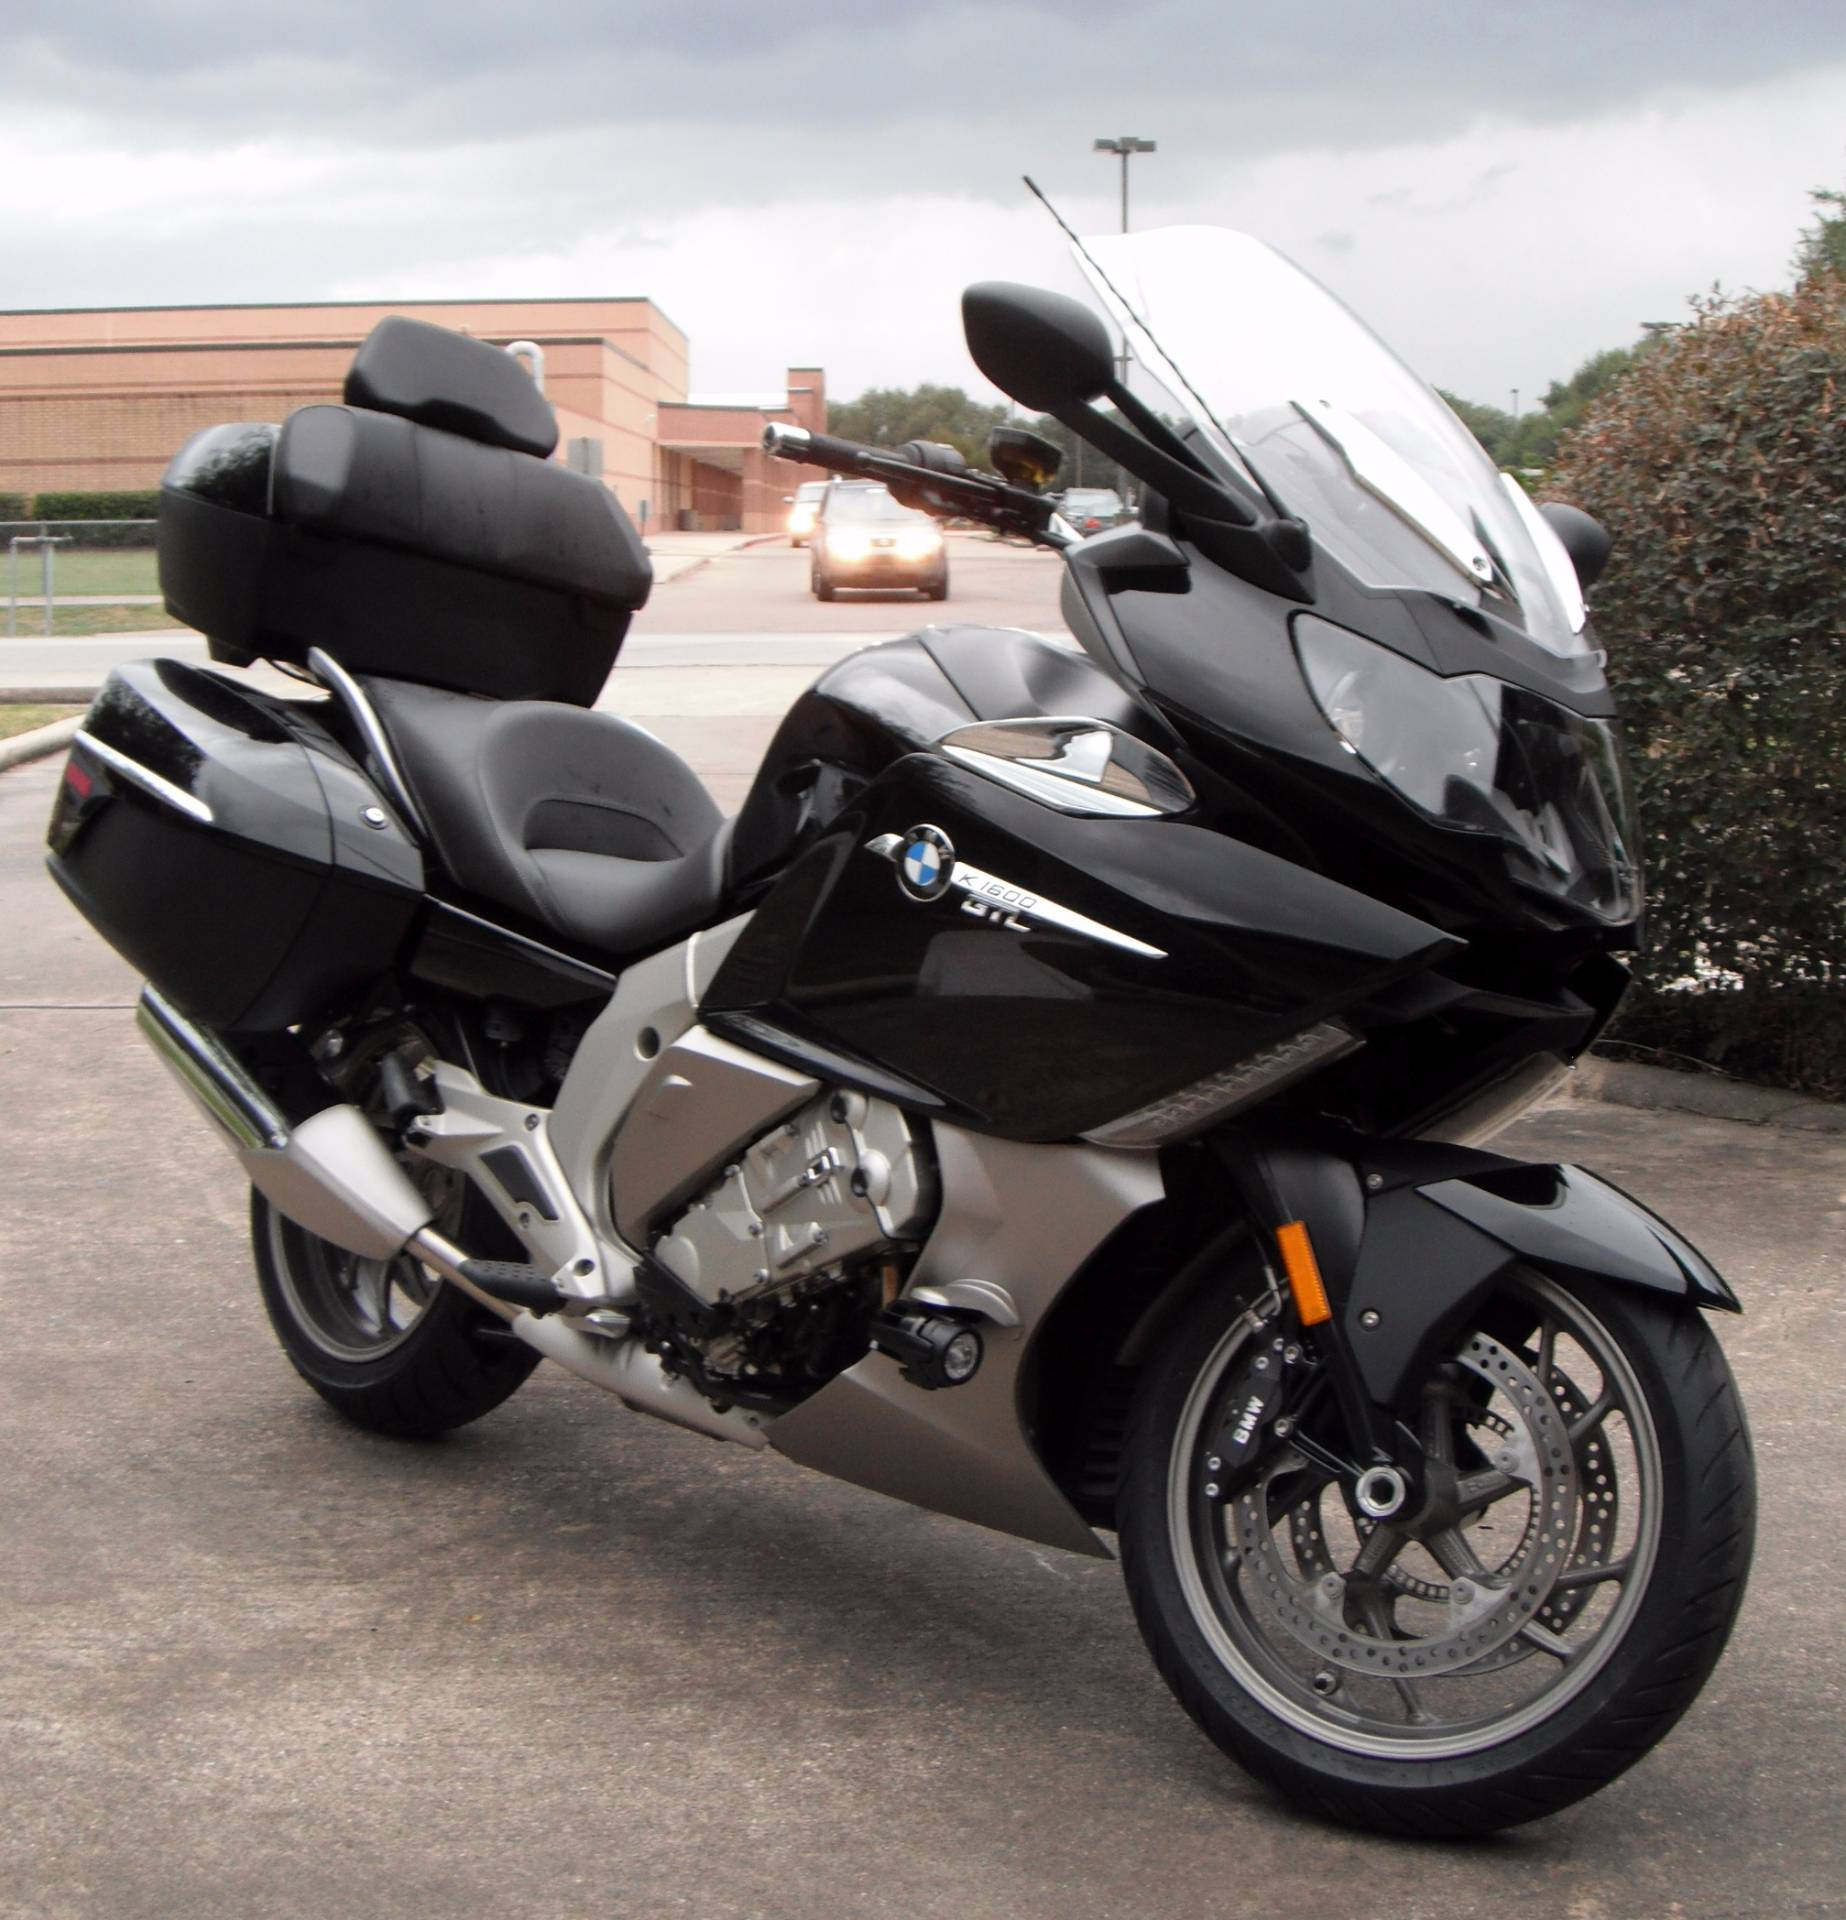 New 2016 BMW K 1600 GTL Motorcycles In South Houston, TX